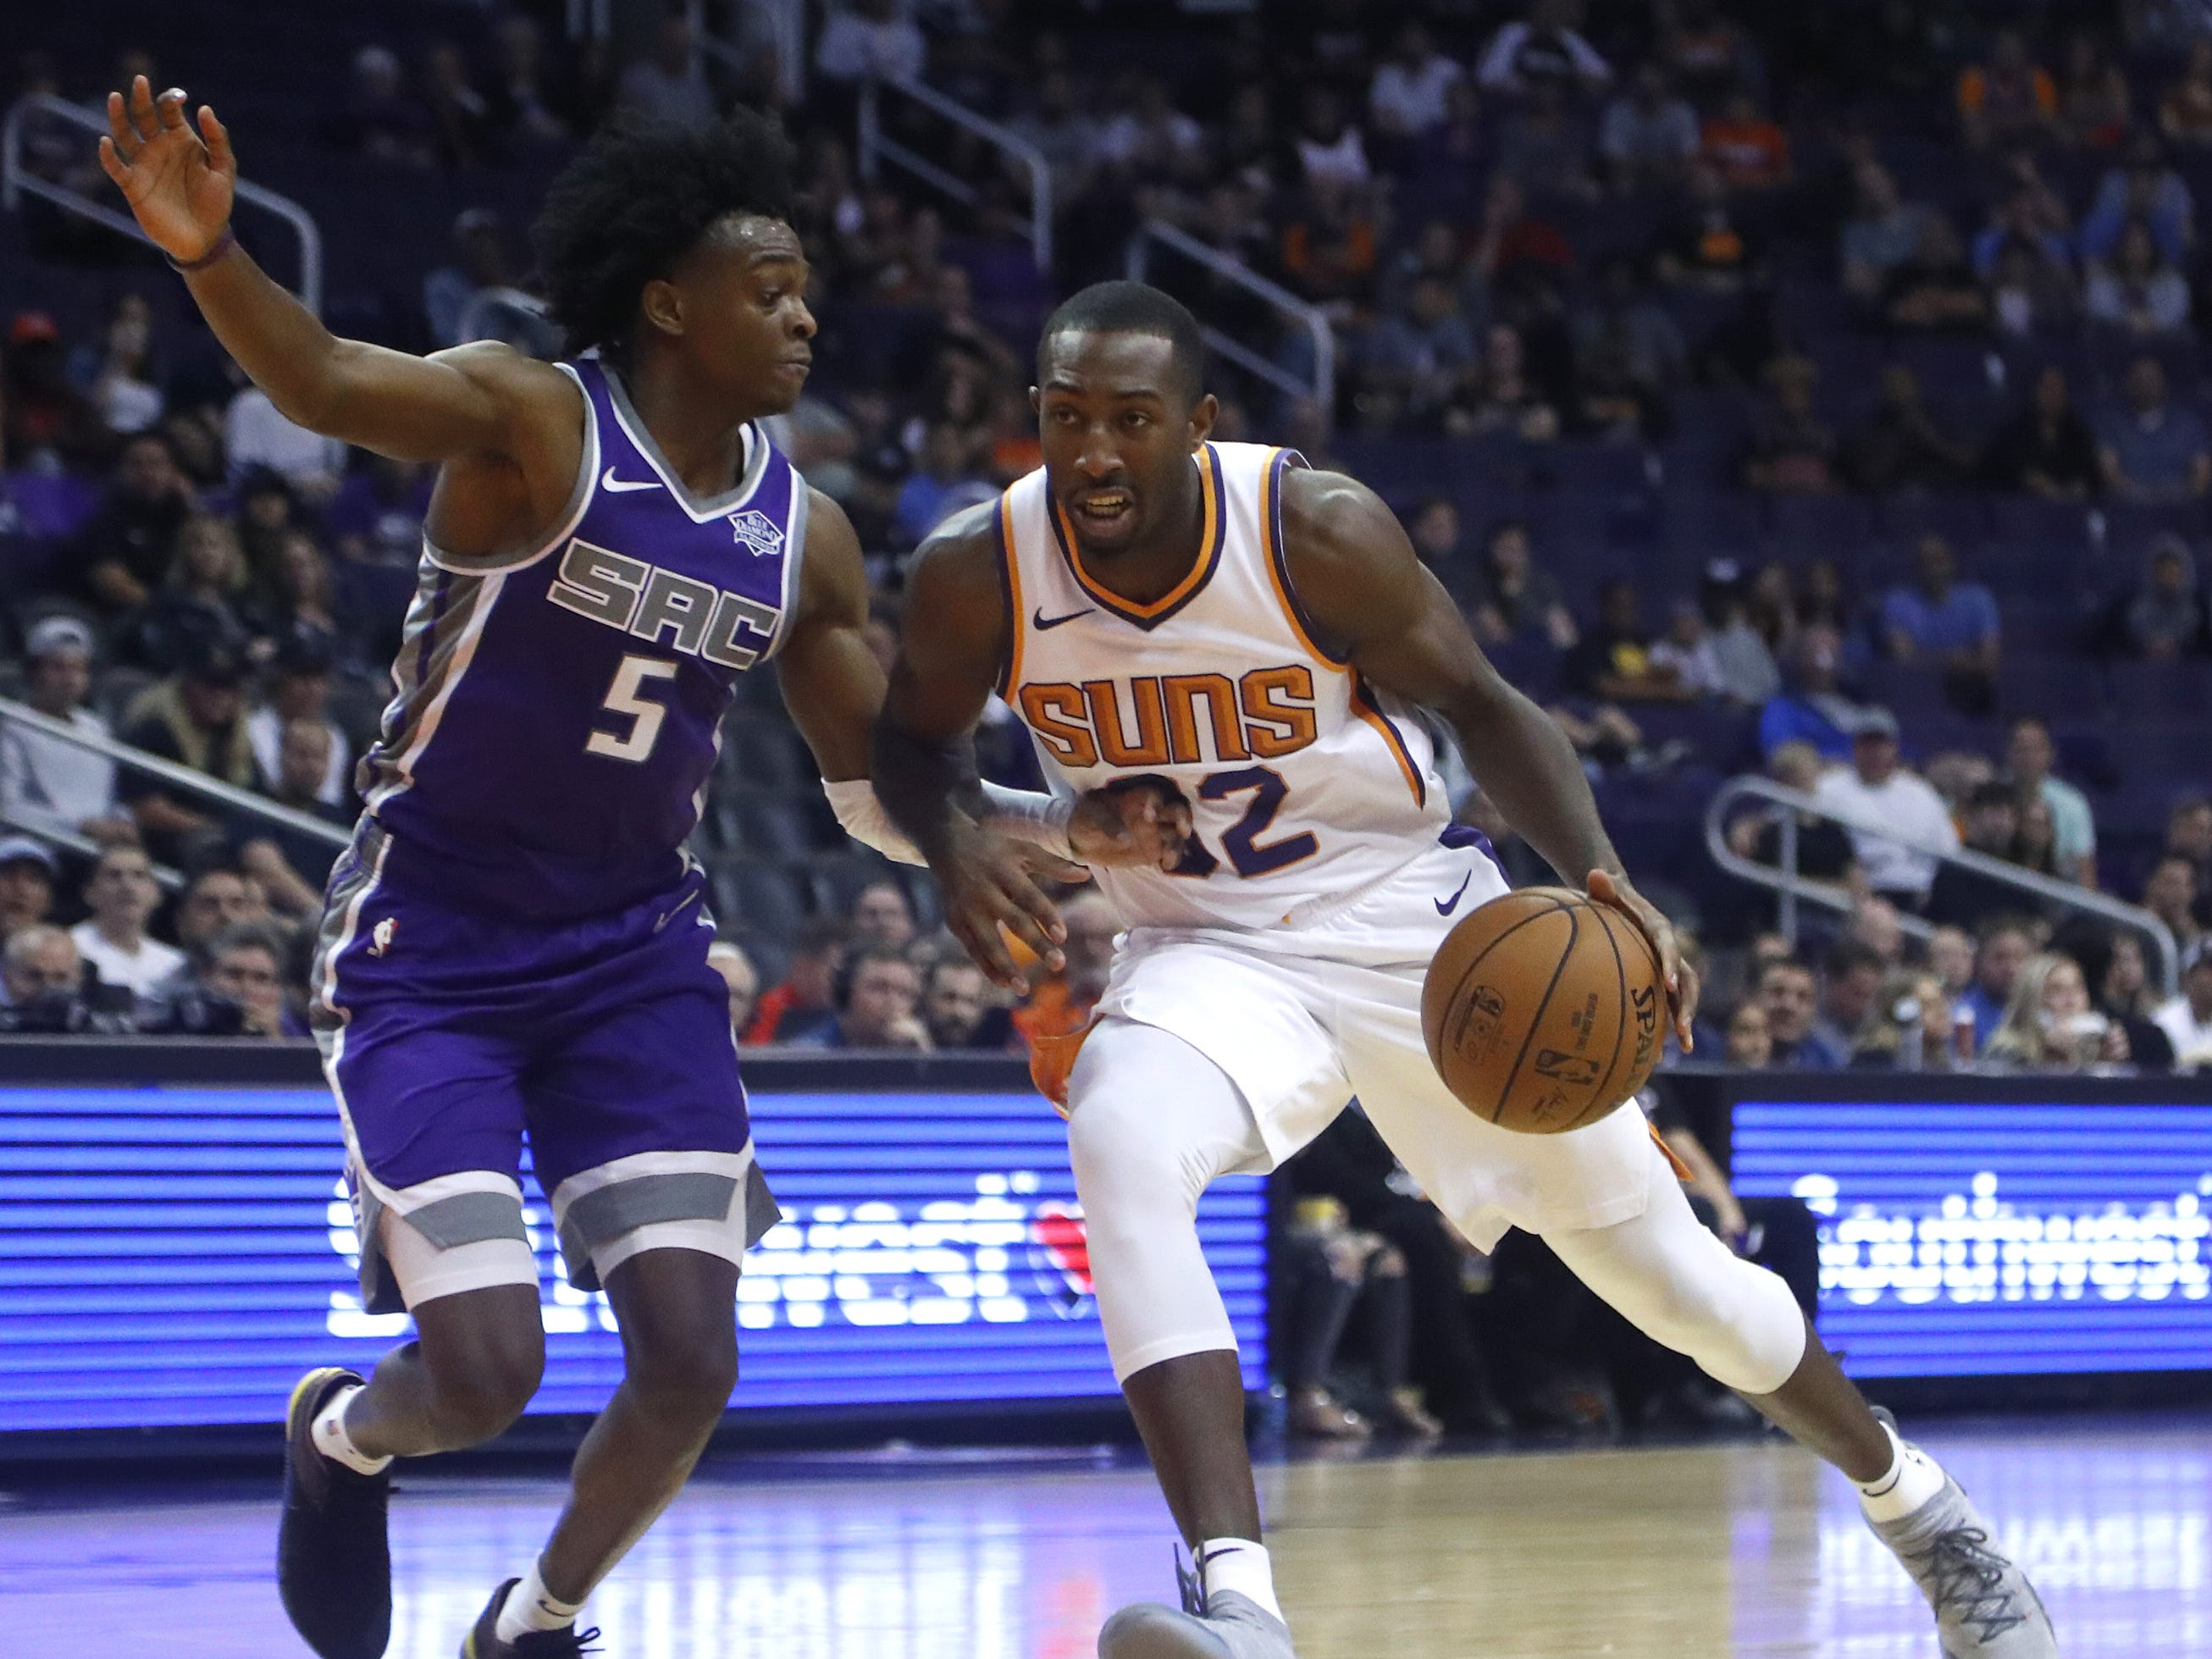 Suns' Davon Reed drives against Kings' De'Aaron Fox (5) during the first half at Talking Stick Resort Arena in Phoenix, Ariz. on October 1, 2018.